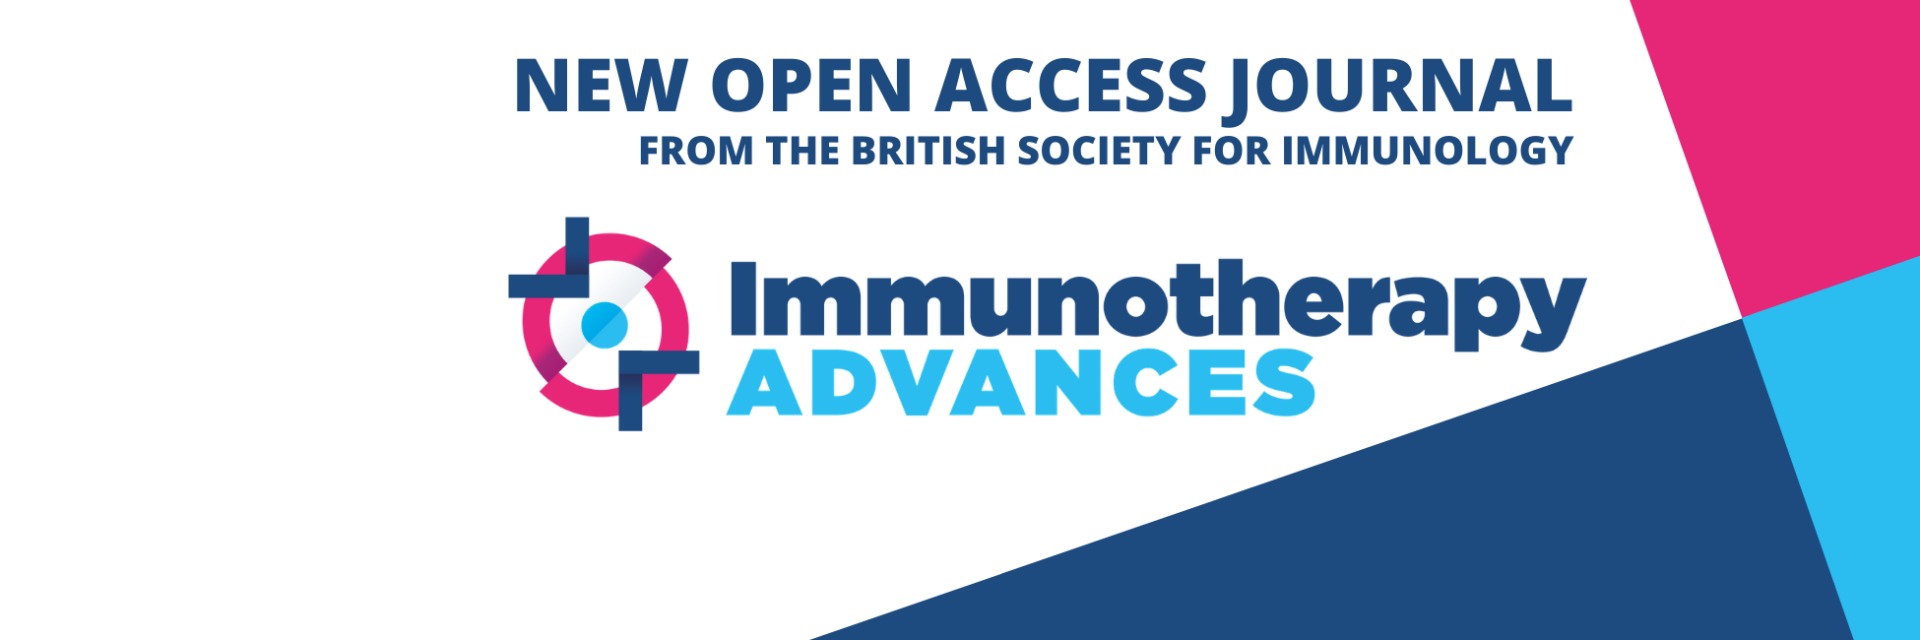 New Open Access journal from the BSI called Immunotherapy Advances